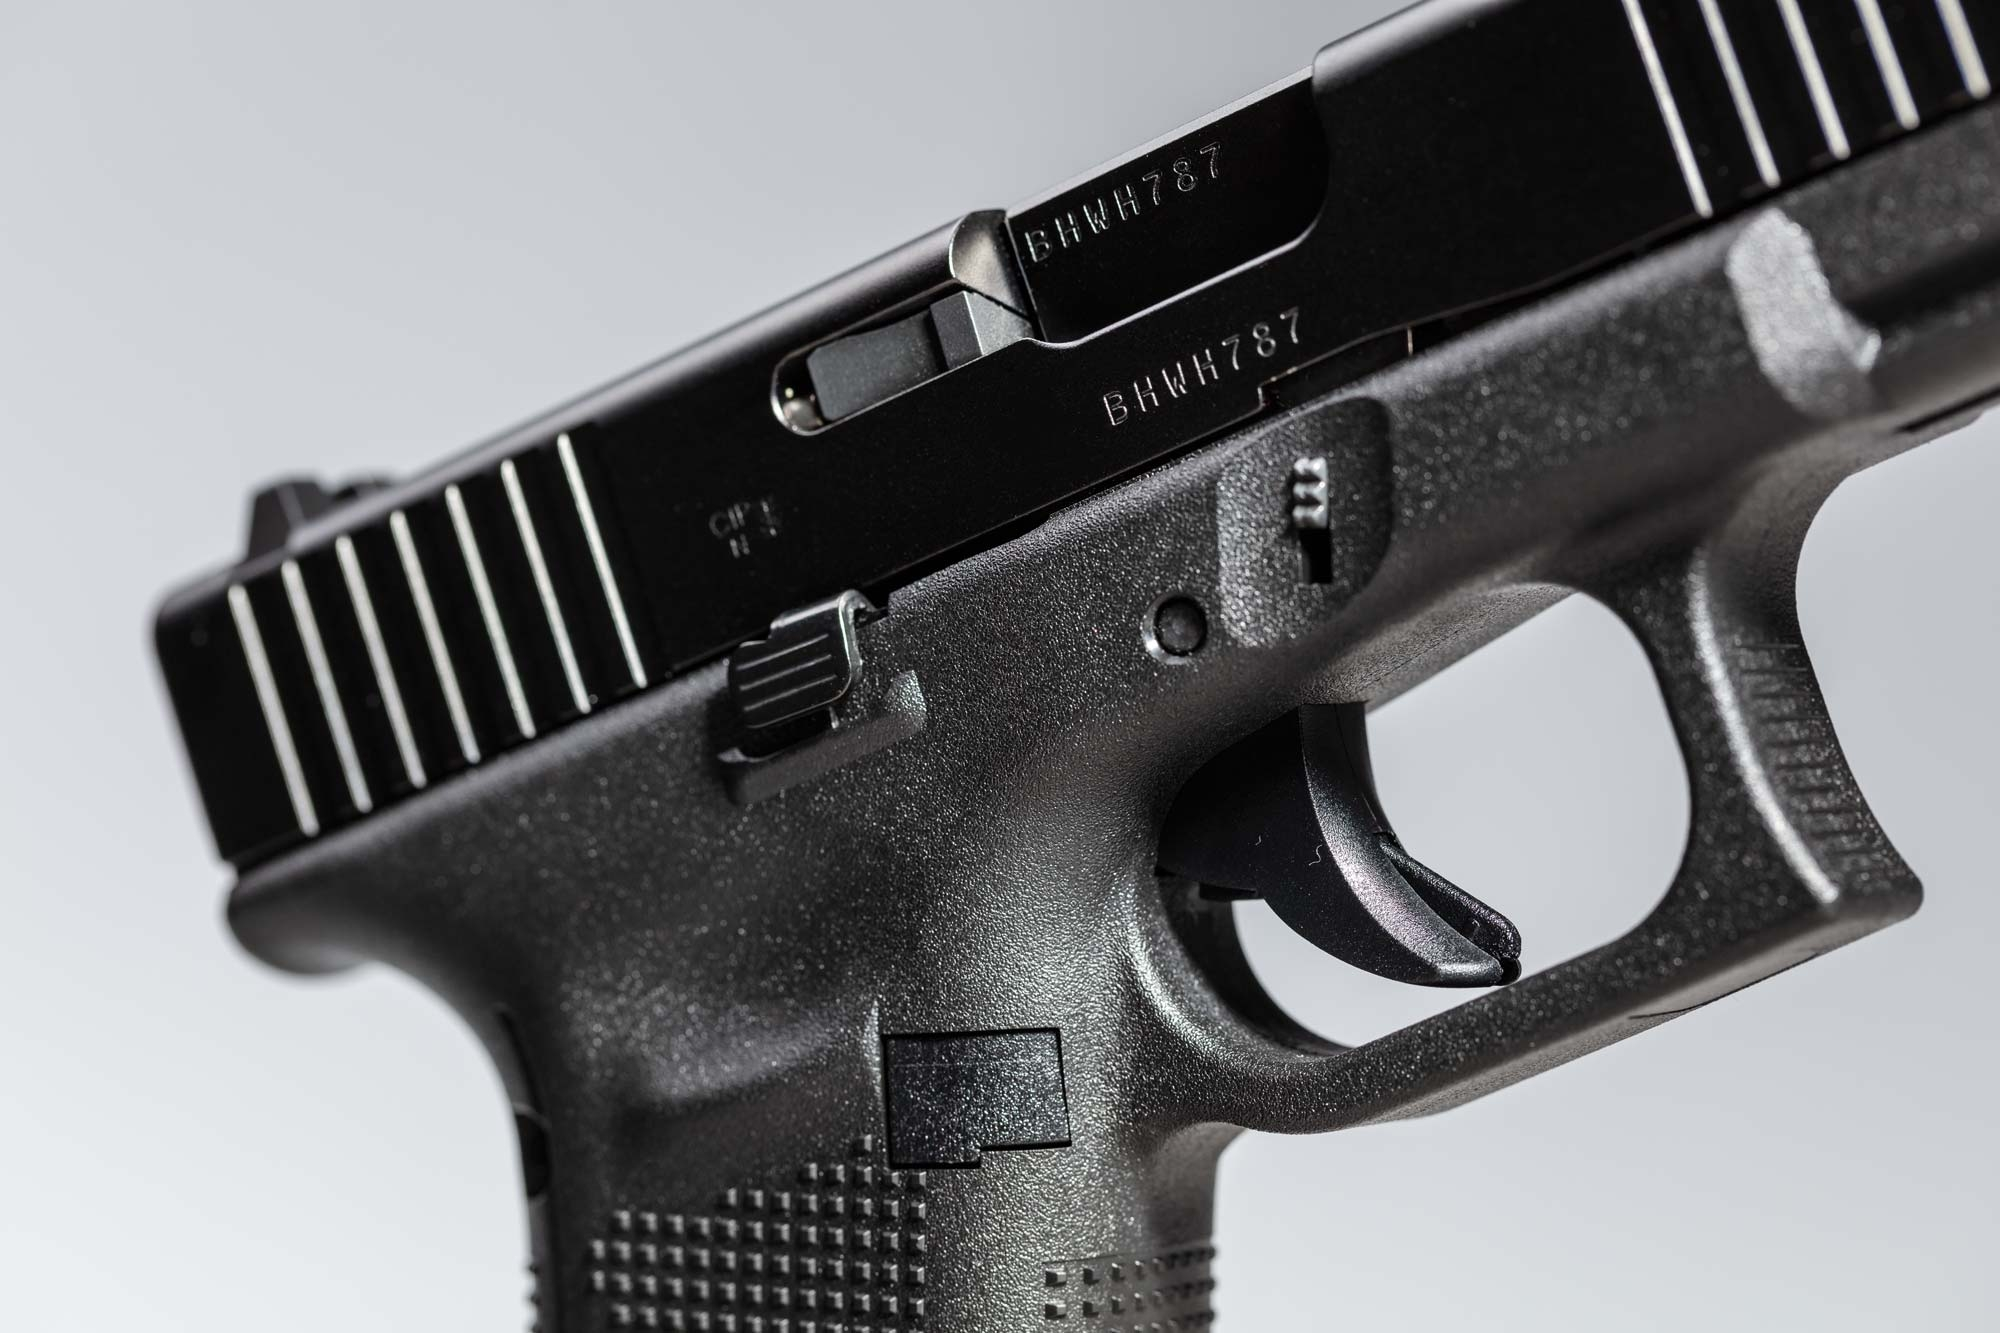 Close-up of the right side slide catch lever of the GLOCK 45 pistol